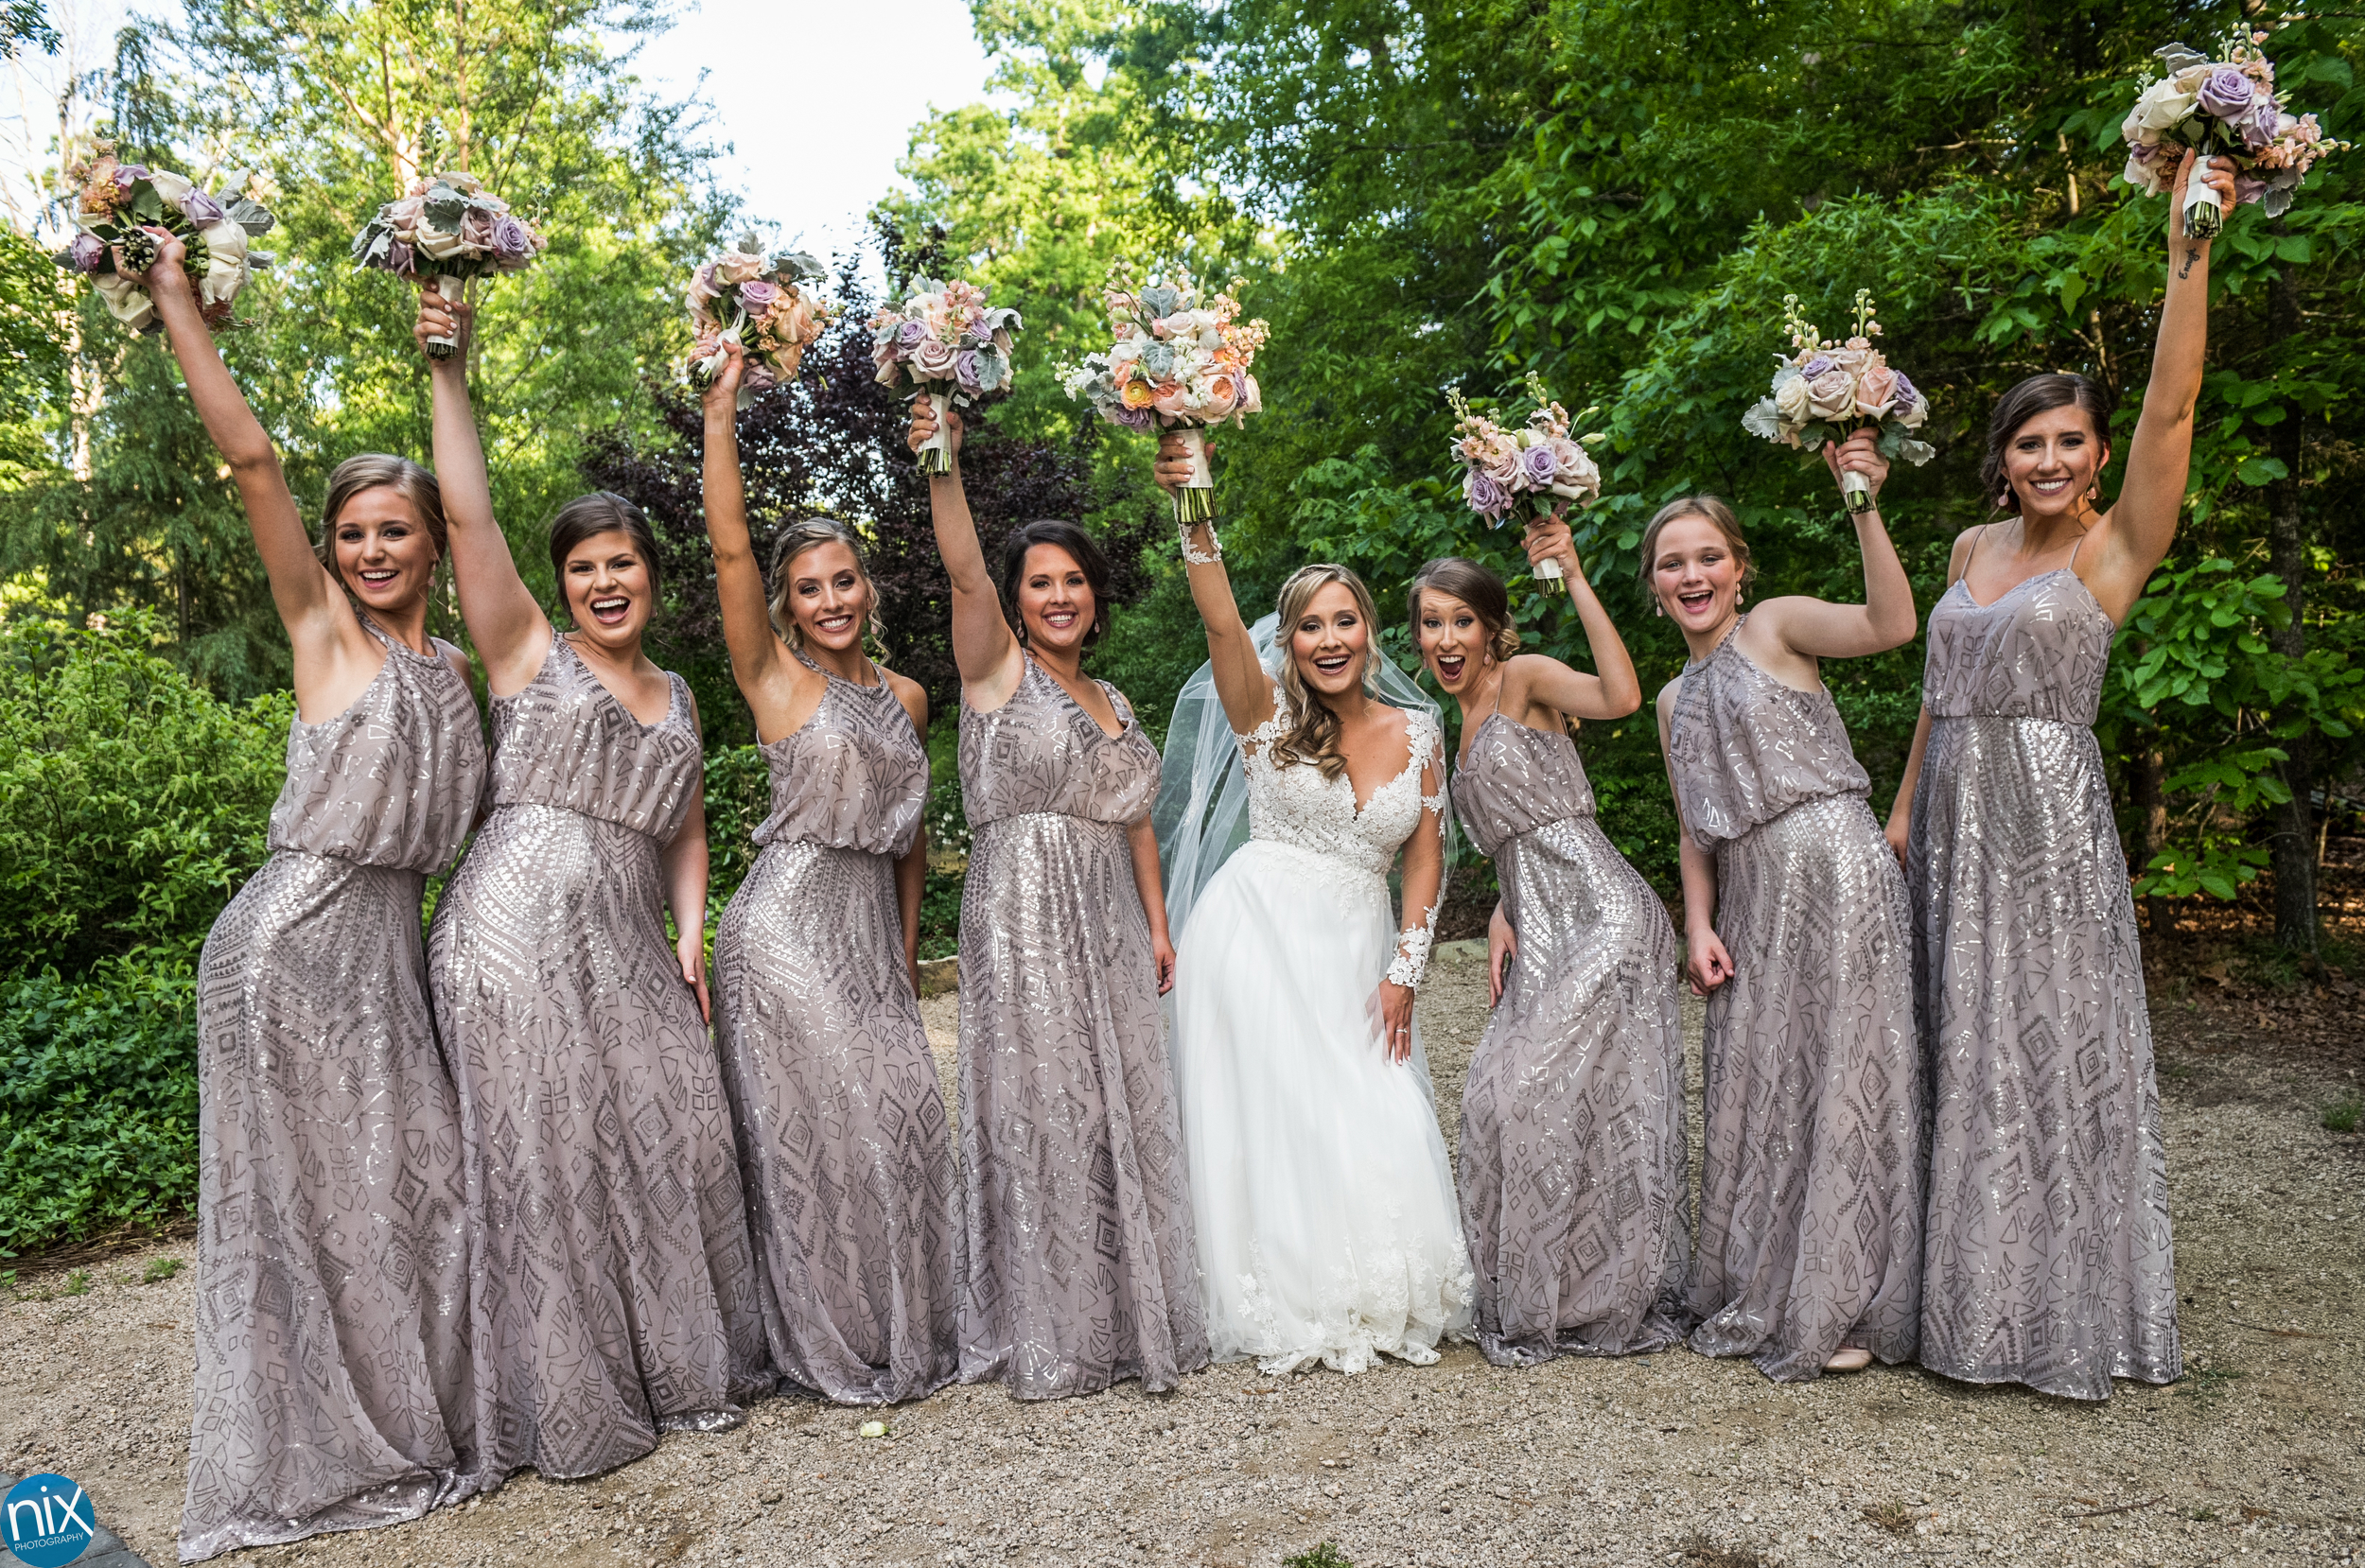 bride and bridesmaids hold up bouquets .jpg